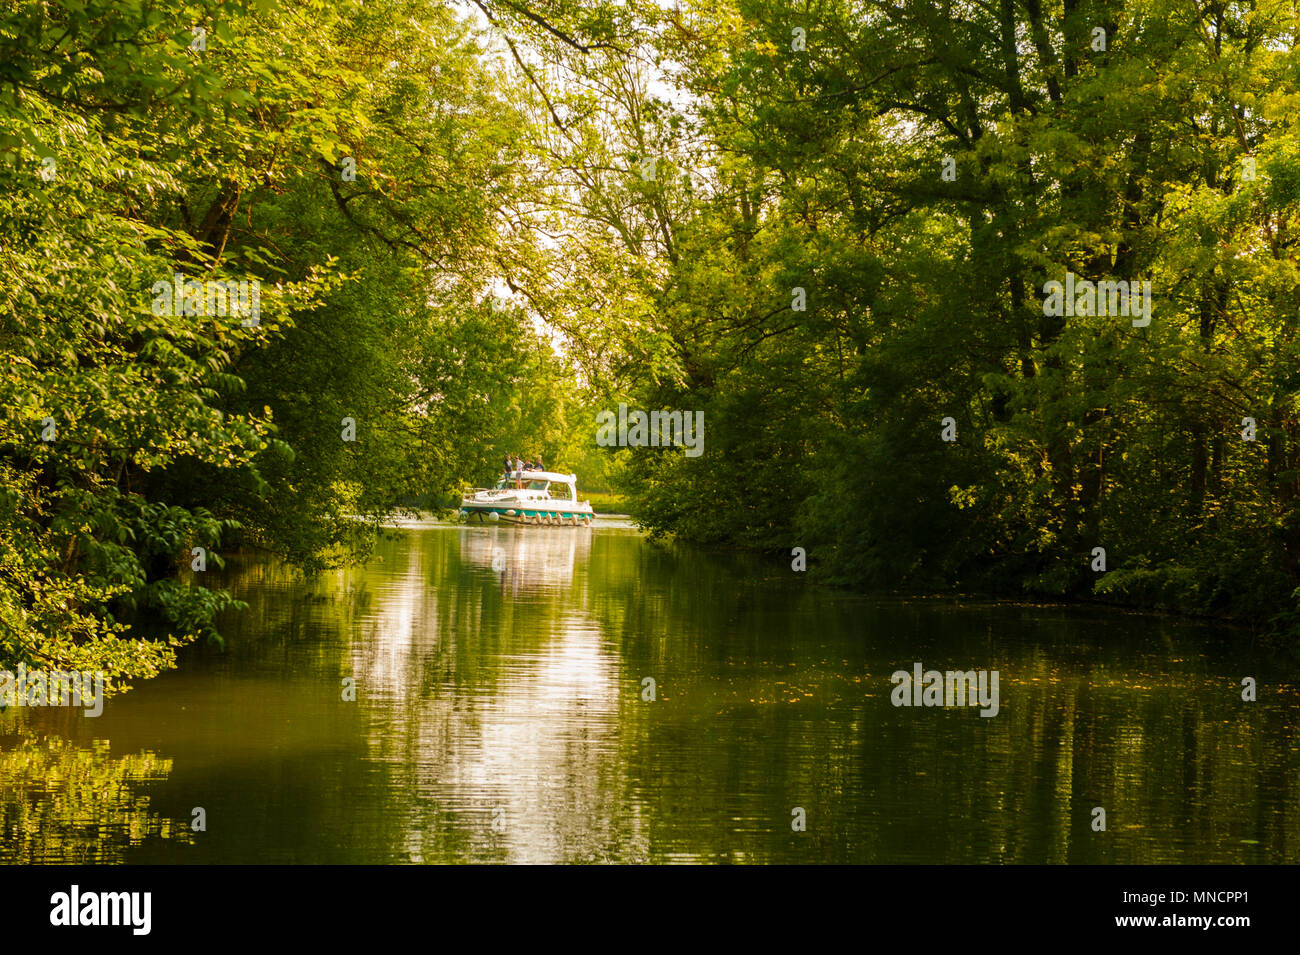 Boating on the Charente river near Vibrac is like passing through green jungles - Stock Image